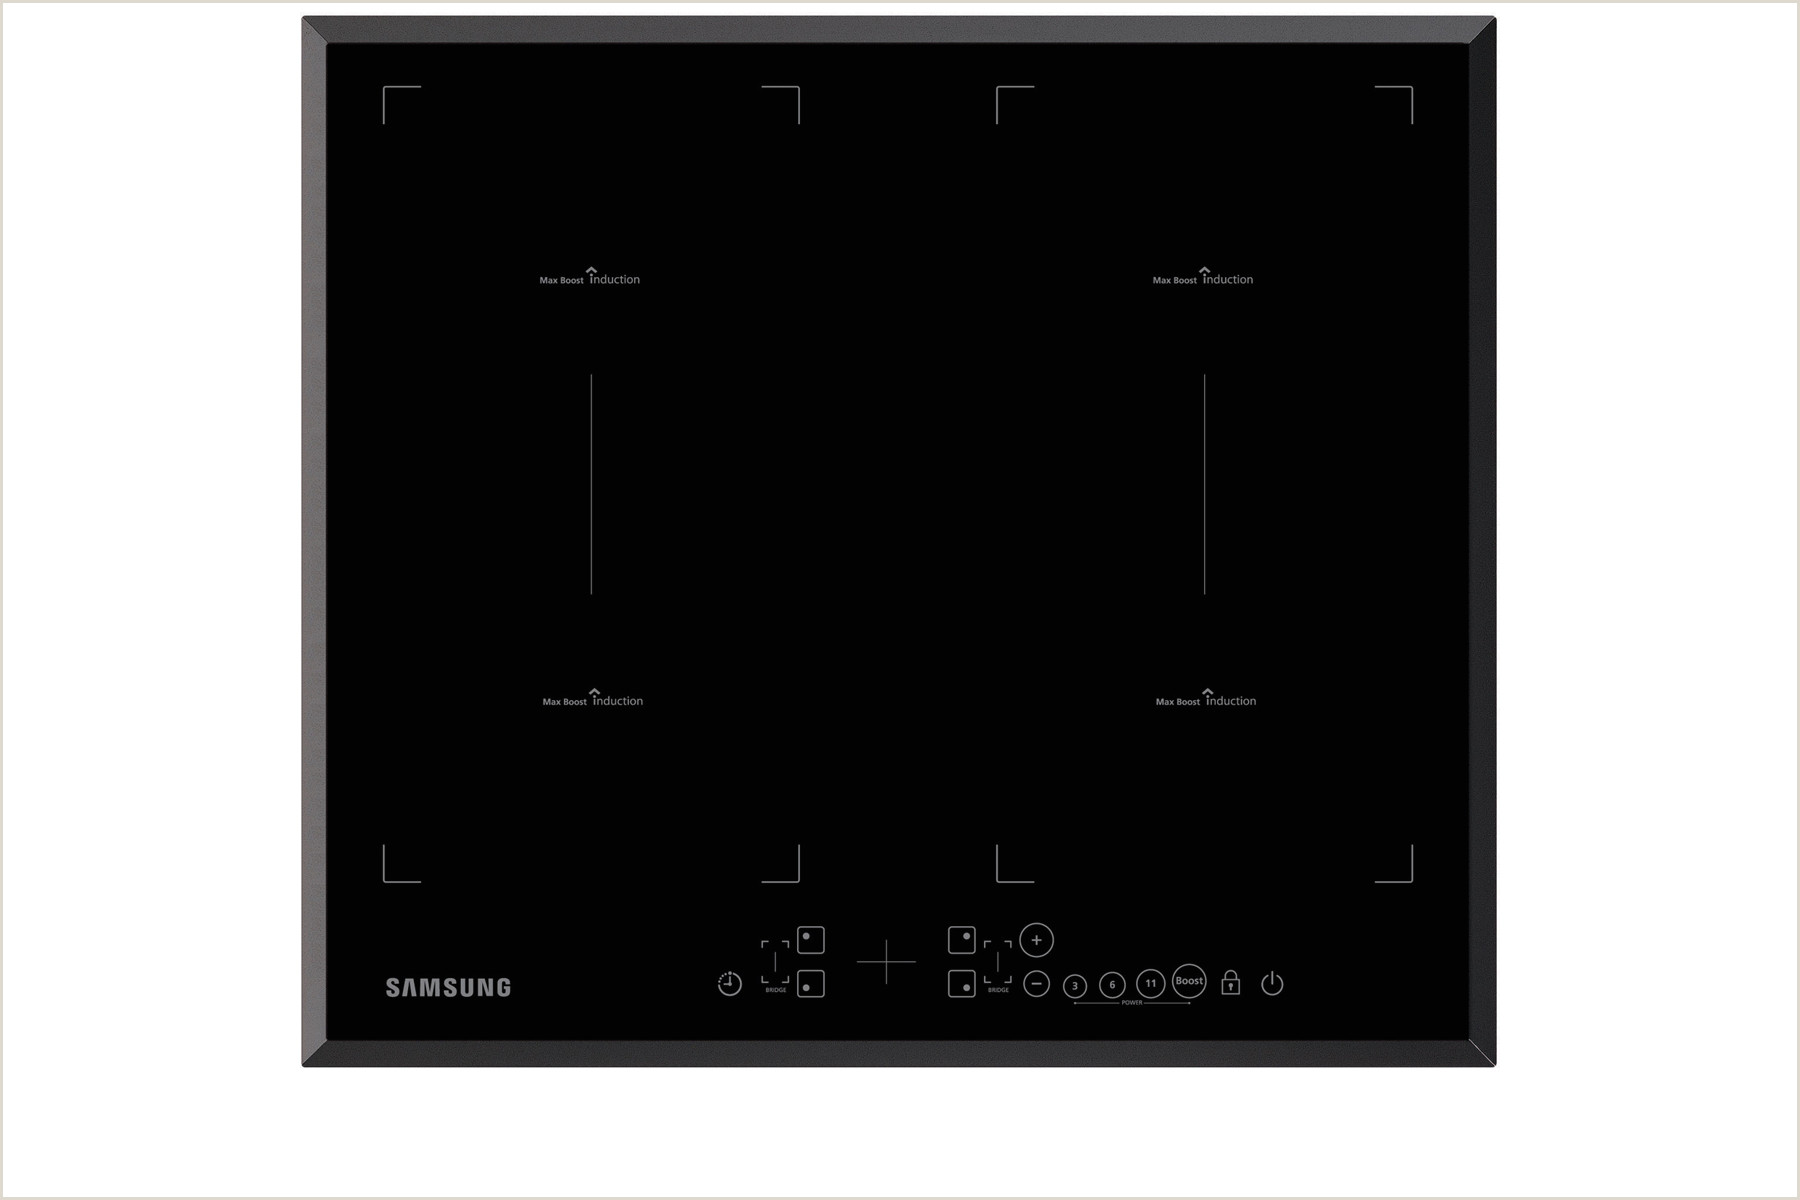 Samsung Electroménager Plaque de cuisson Table induction 2